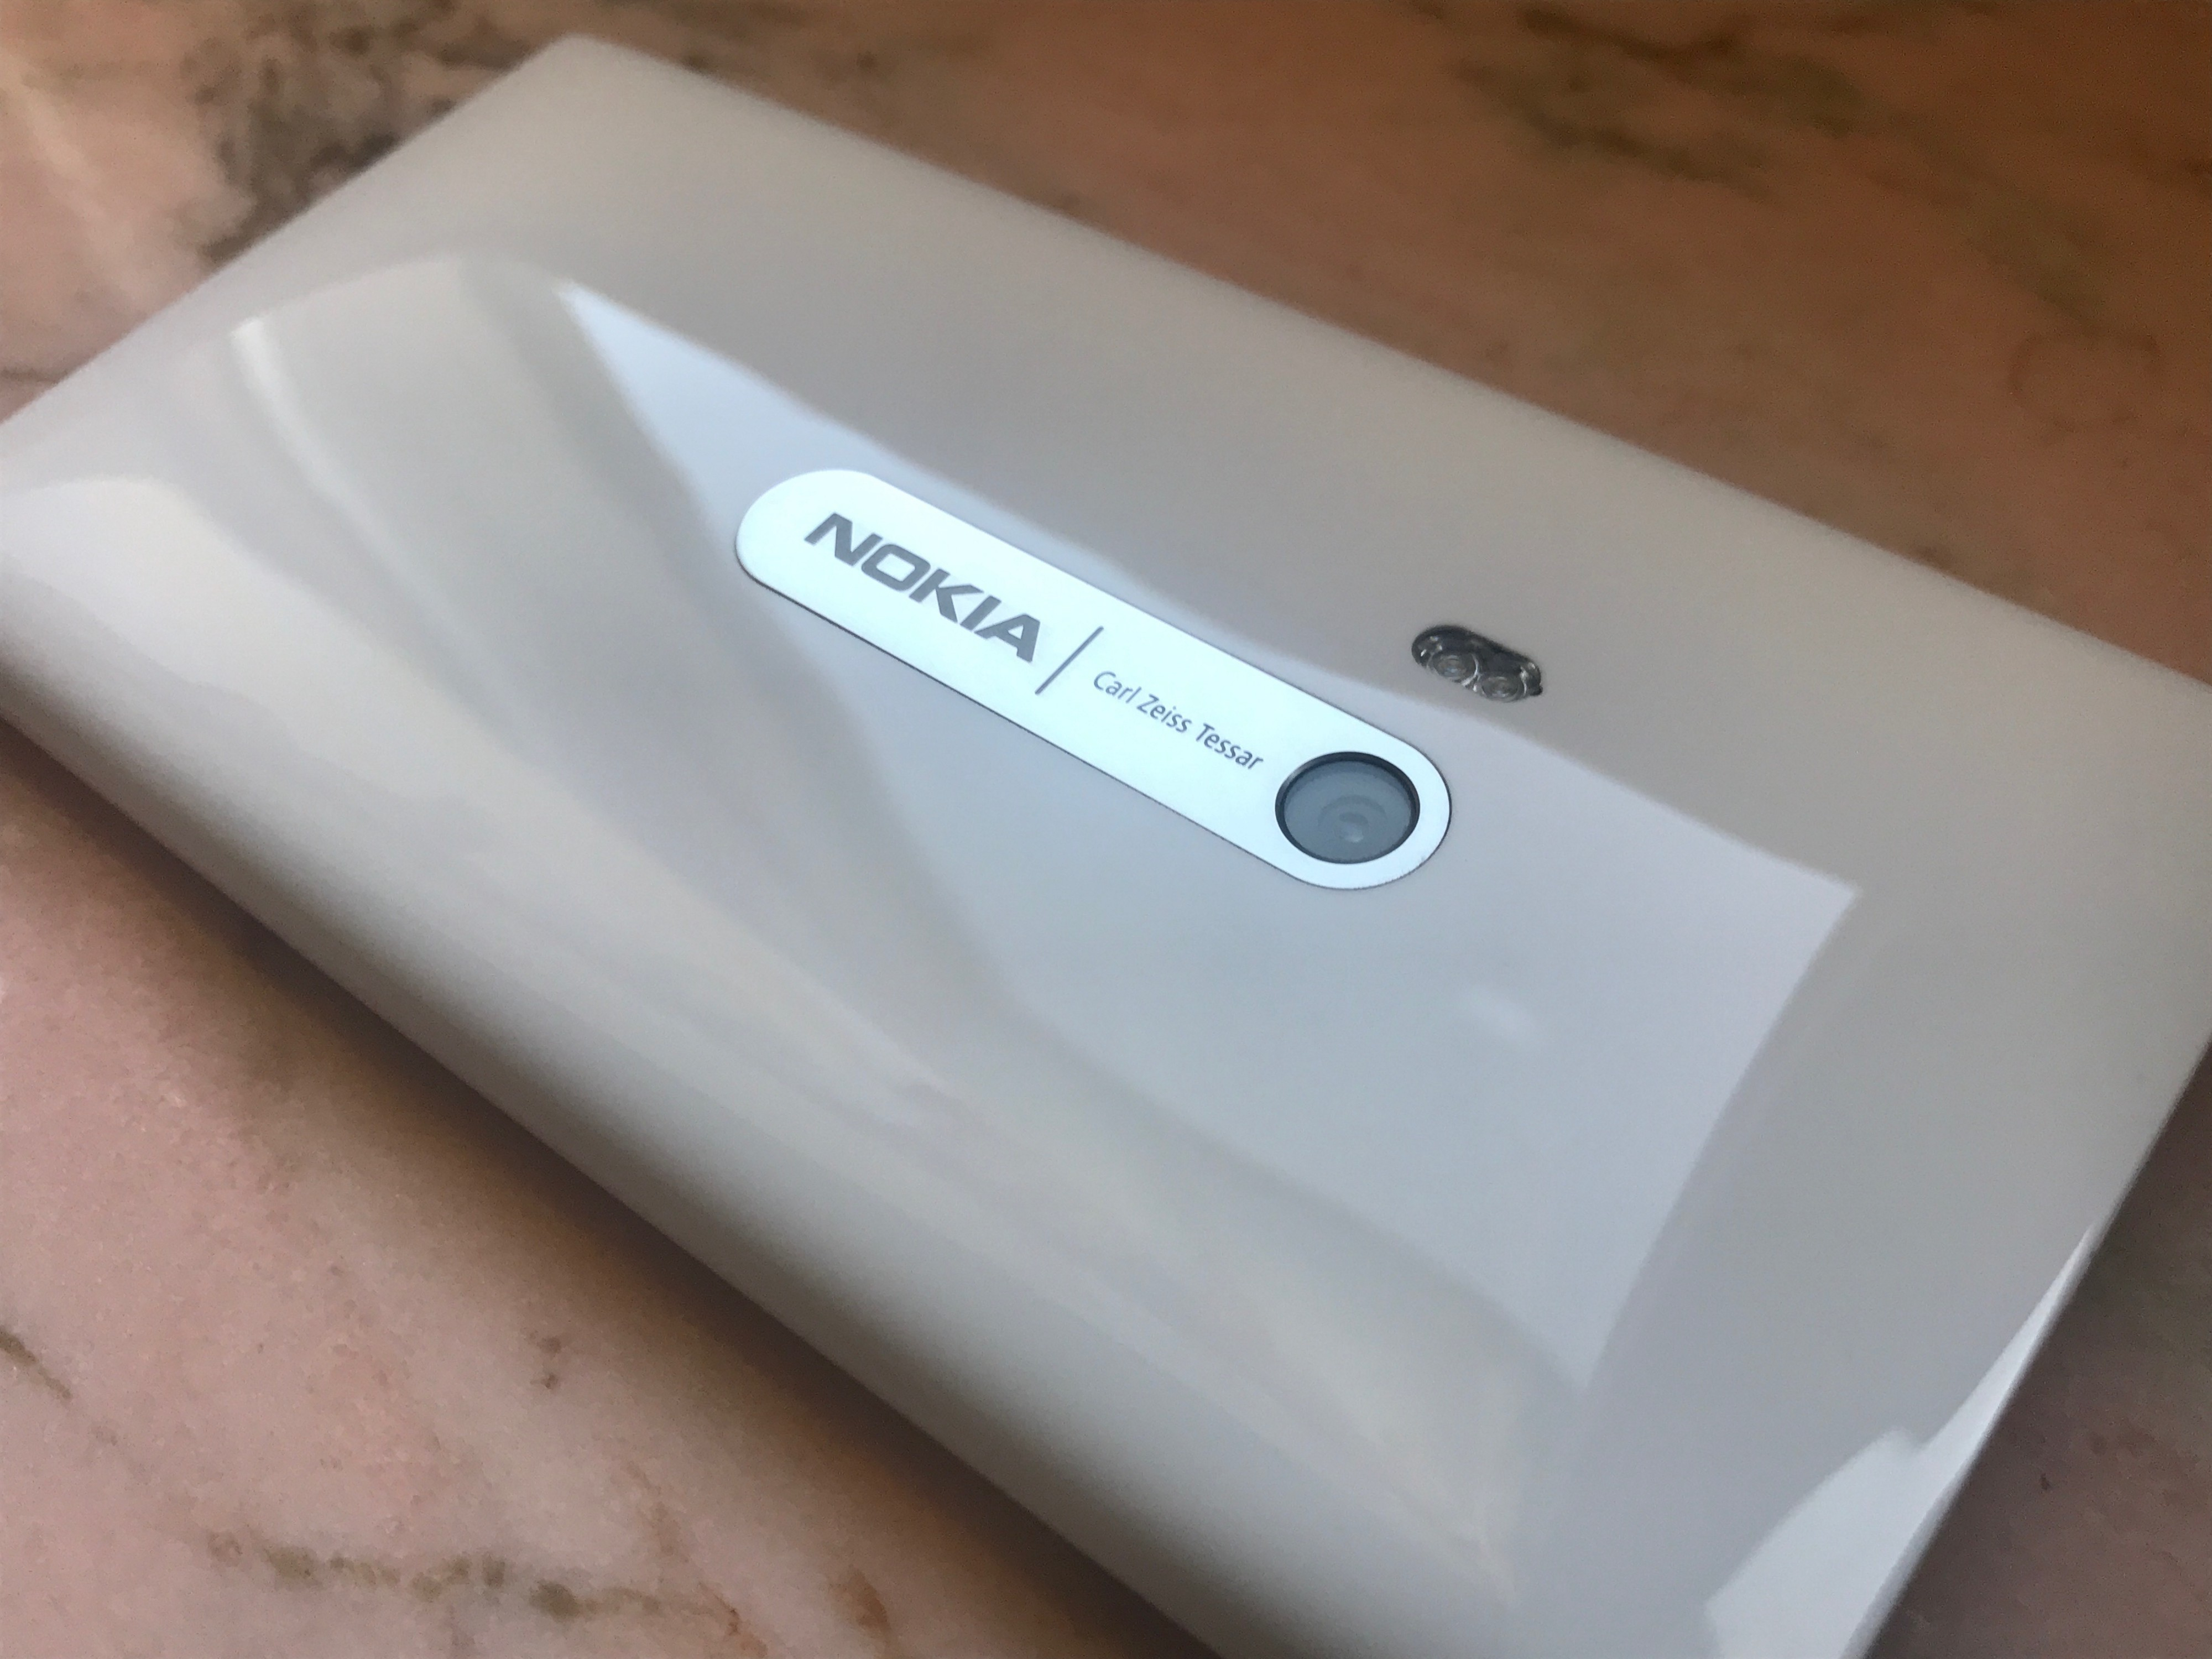 Using a Nokia N9 in 2018, the starting guide - Jolla-Devices